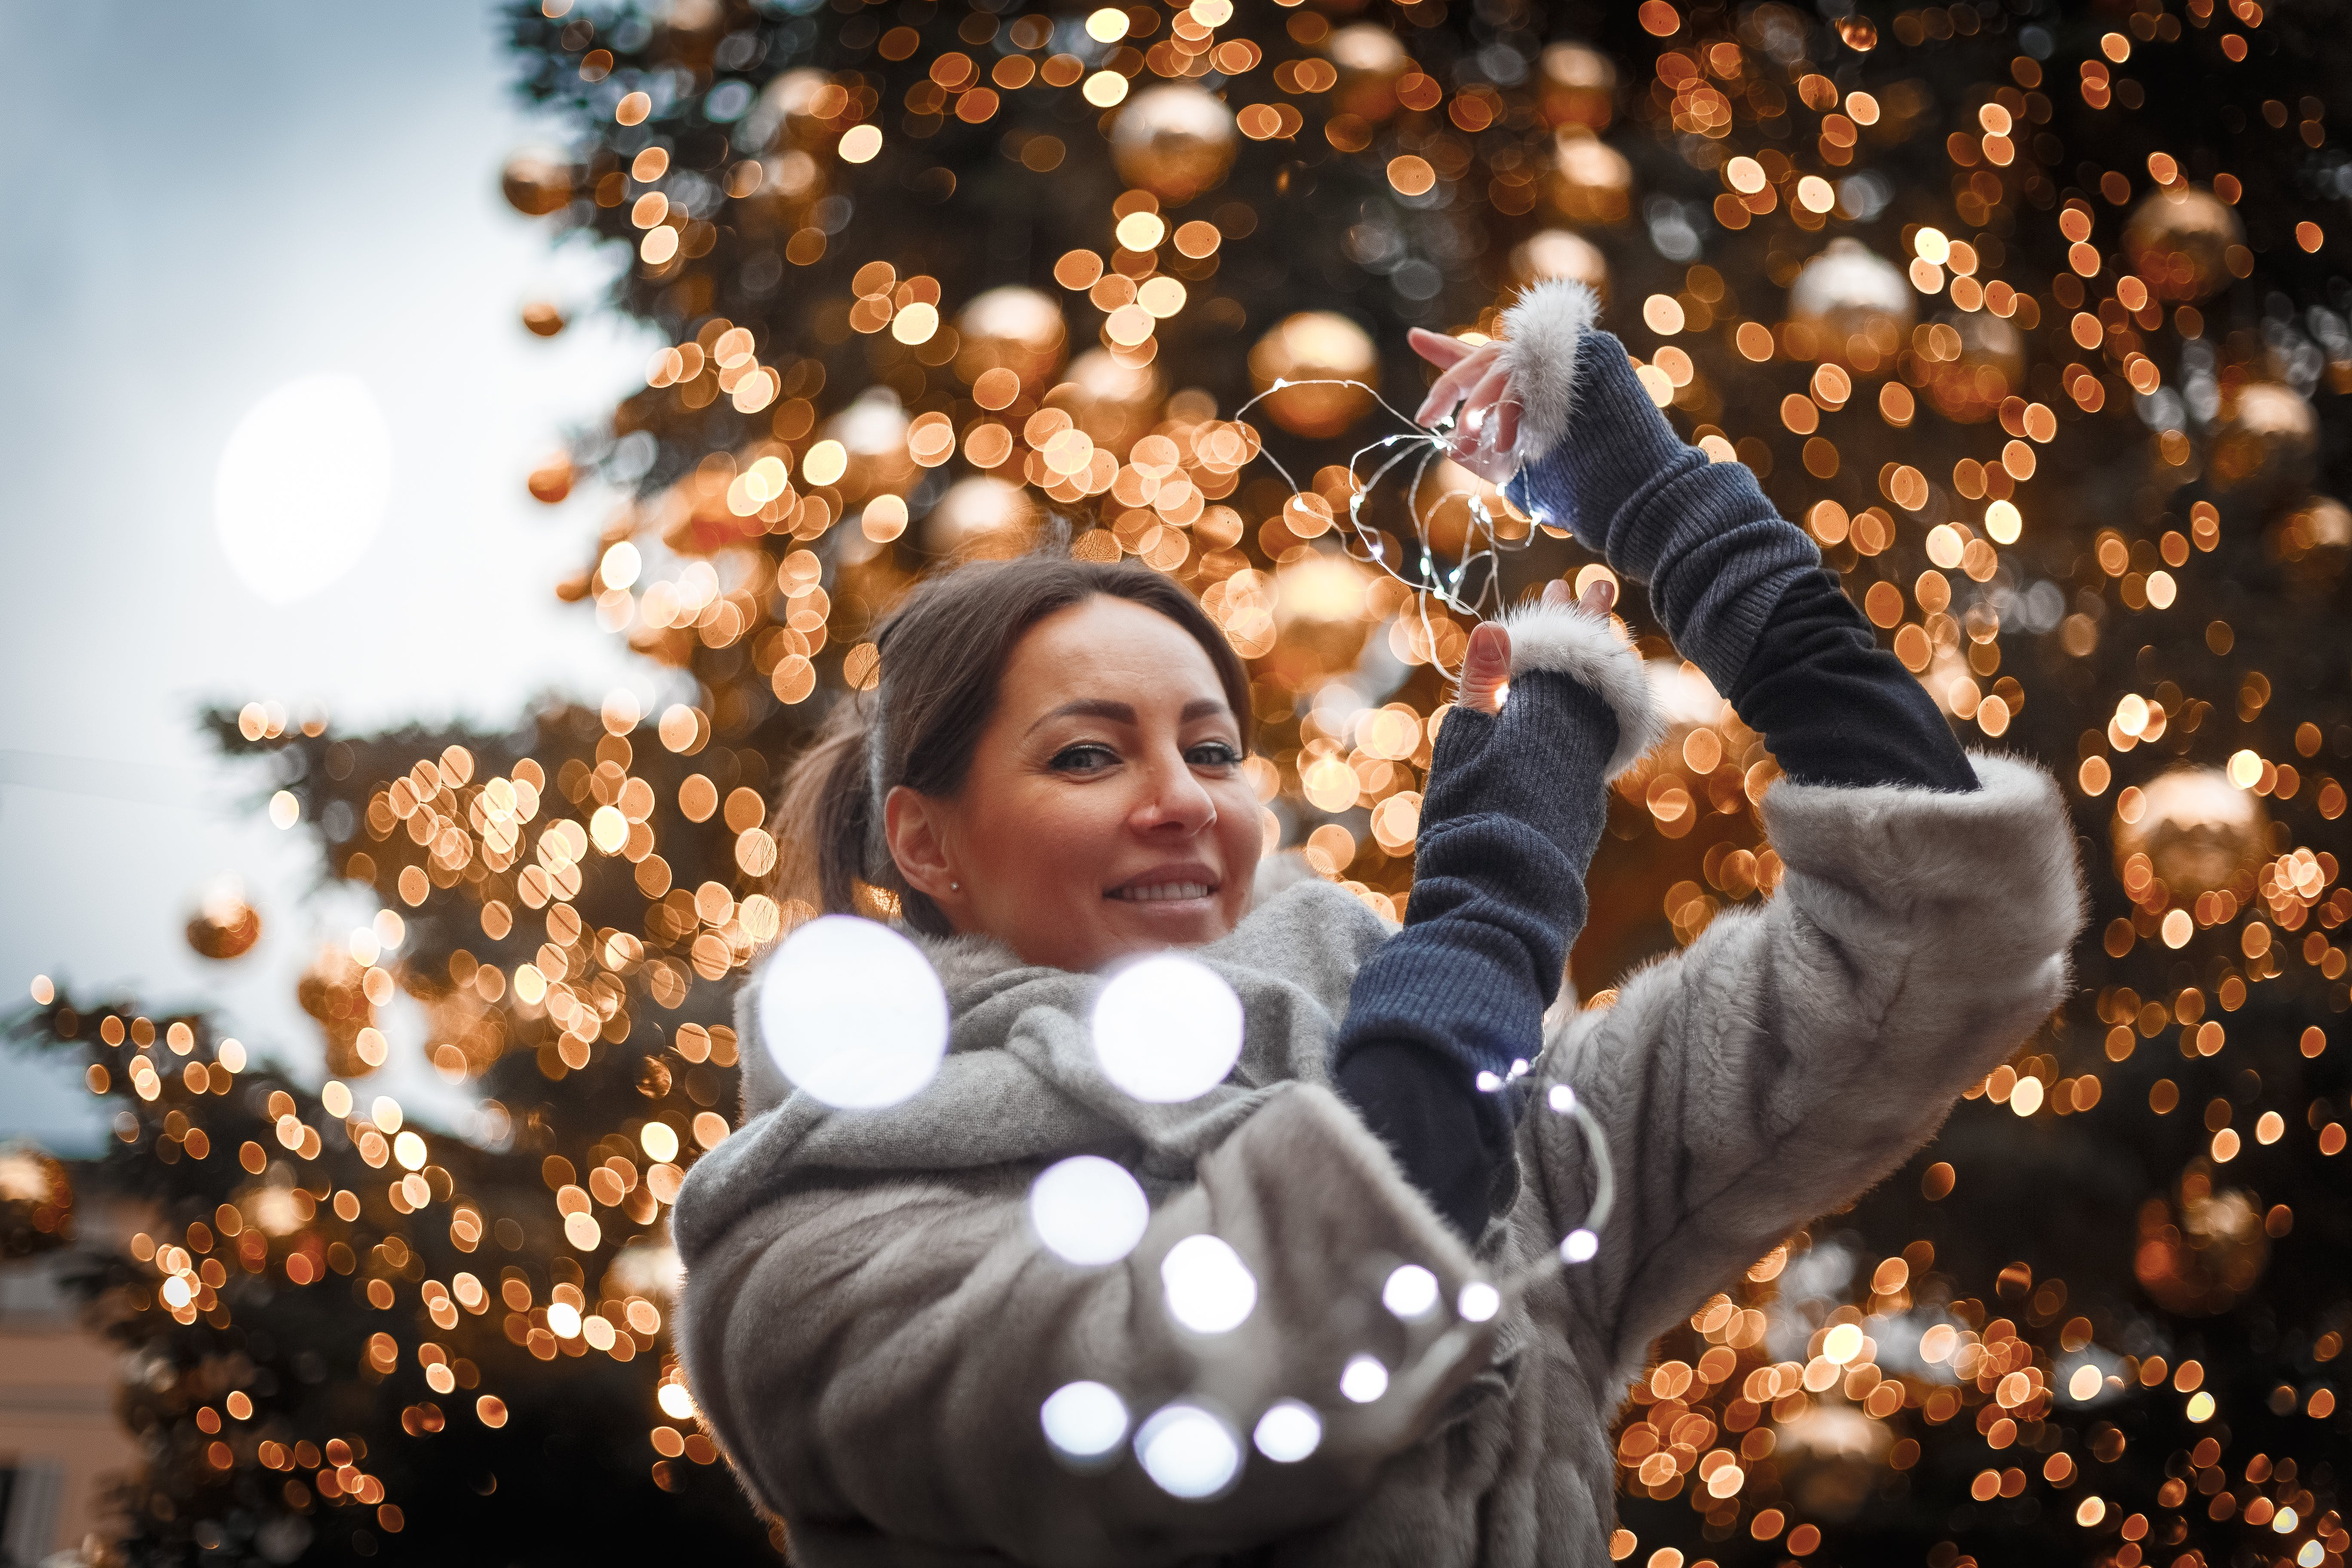 Selective Focus Photo of Woman Holding String Lights